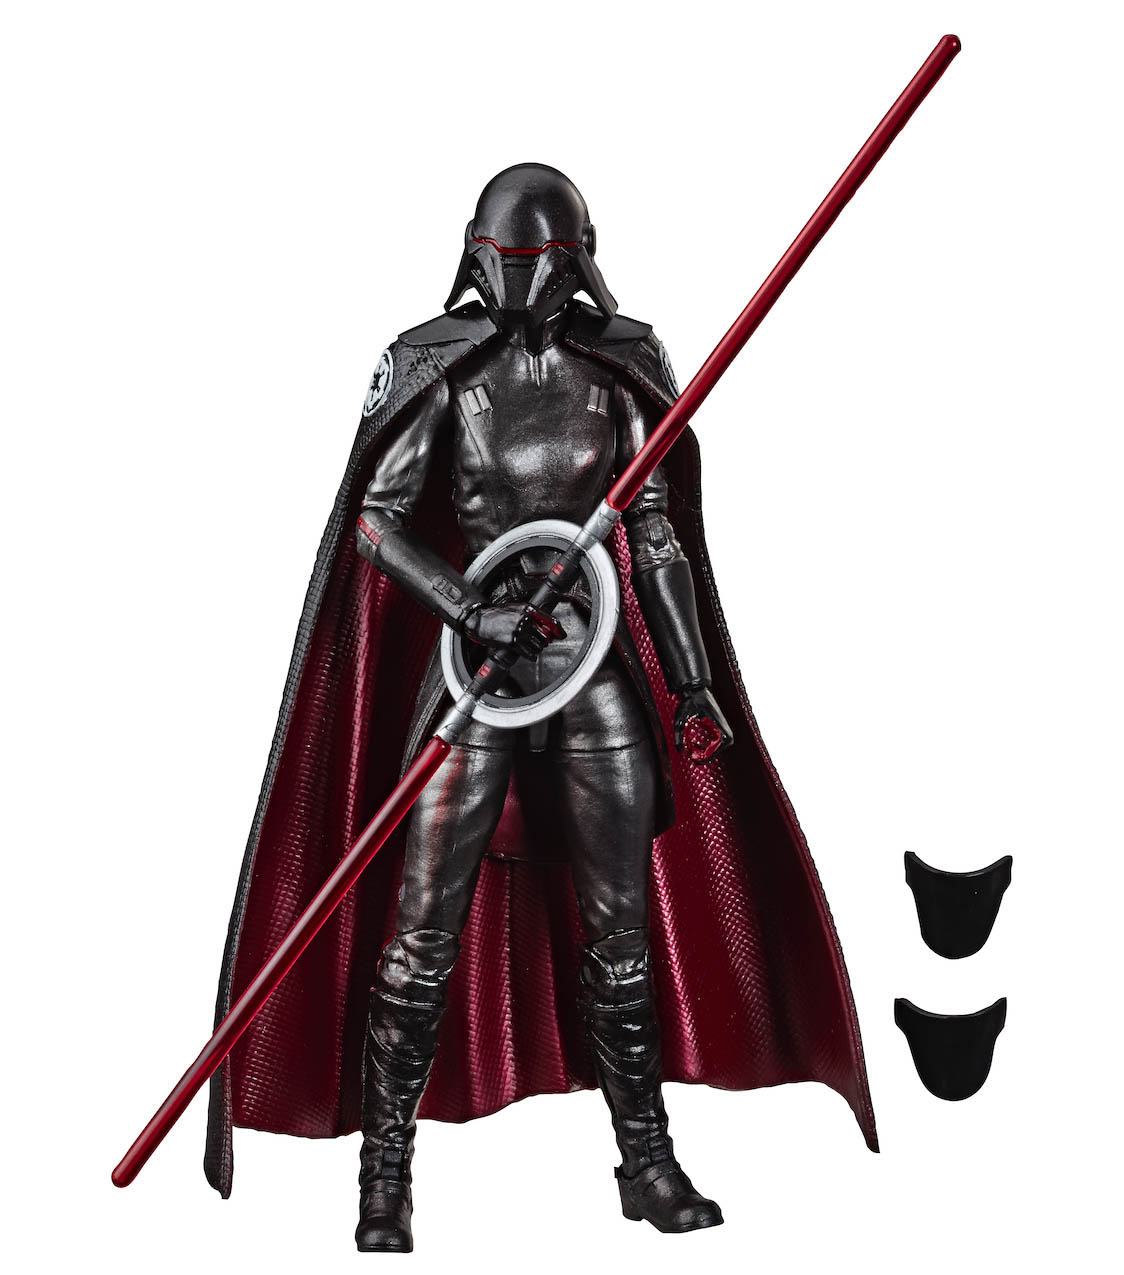 Hasbro's Black Series Second Sister